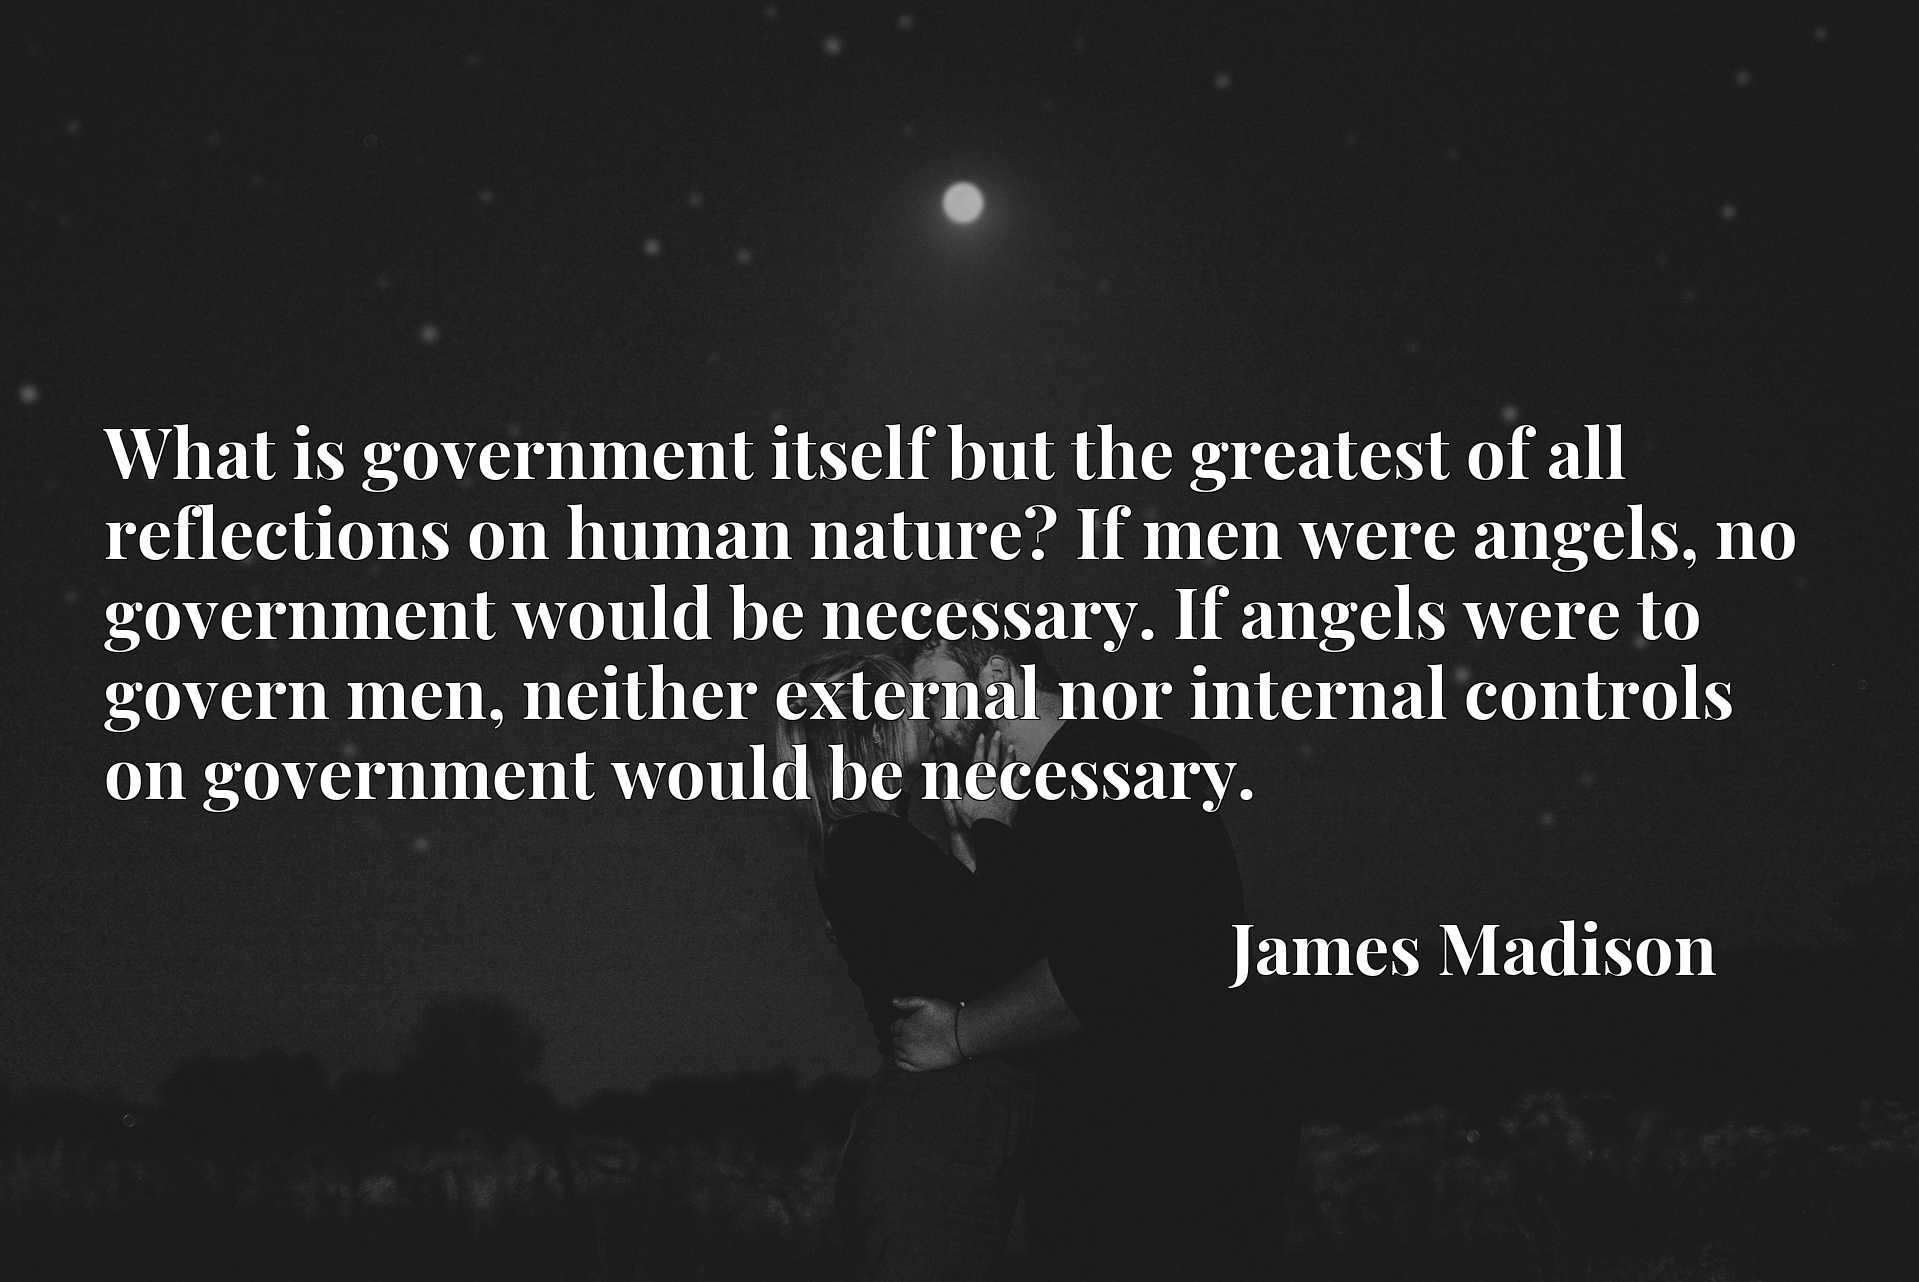 What is government itself but the greatest of all reflections on human nature? If men were angels, no government would be necessary. If angels were to govern men, neither external nor internal controls on government would be necessary.